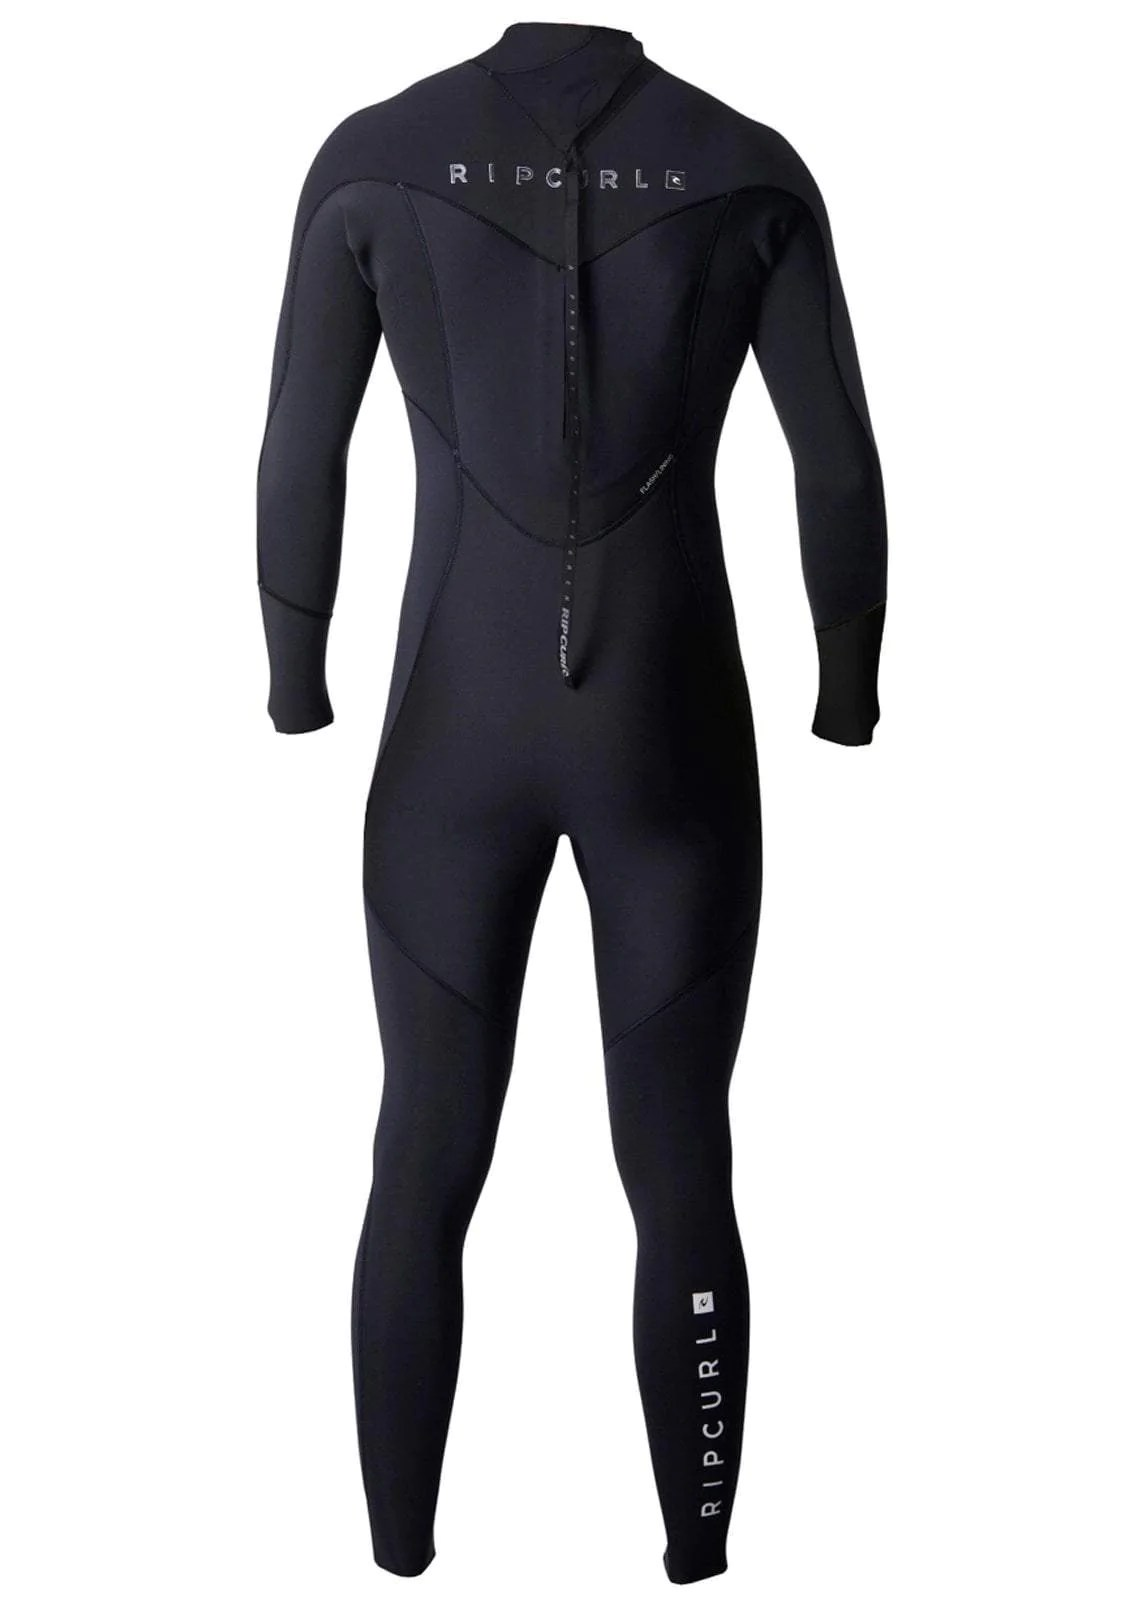 c993b87145 Rip curl dawn patrol back zip wetsuit size charts also jacks surfboards rh  jackssurfboards